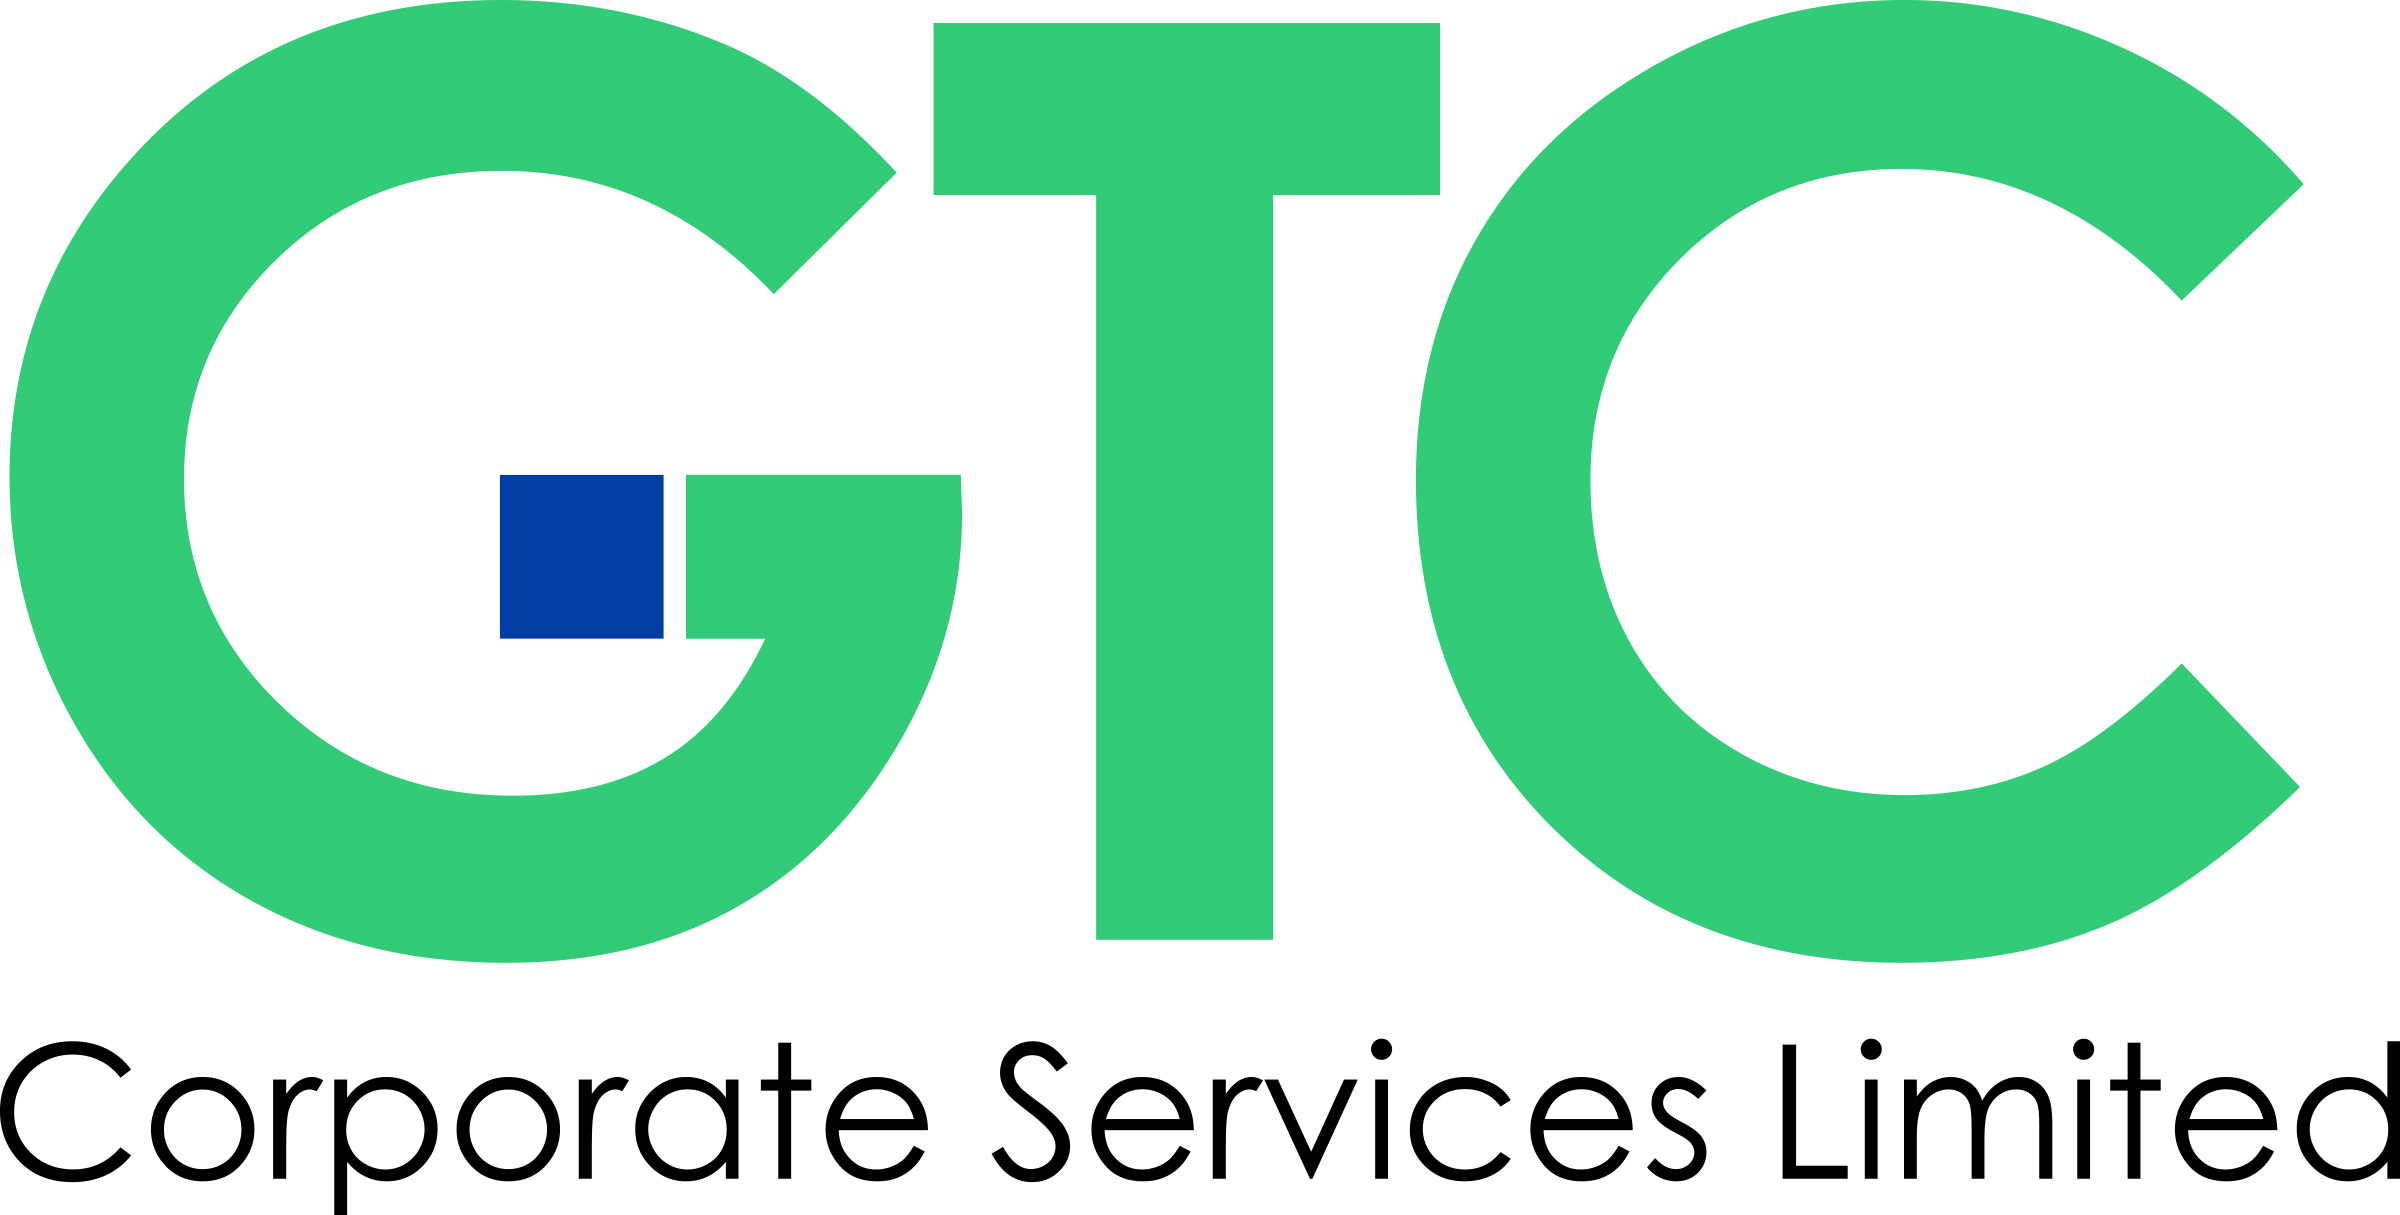 URGENT NOTICE: GTC CORPORATE SERVICES